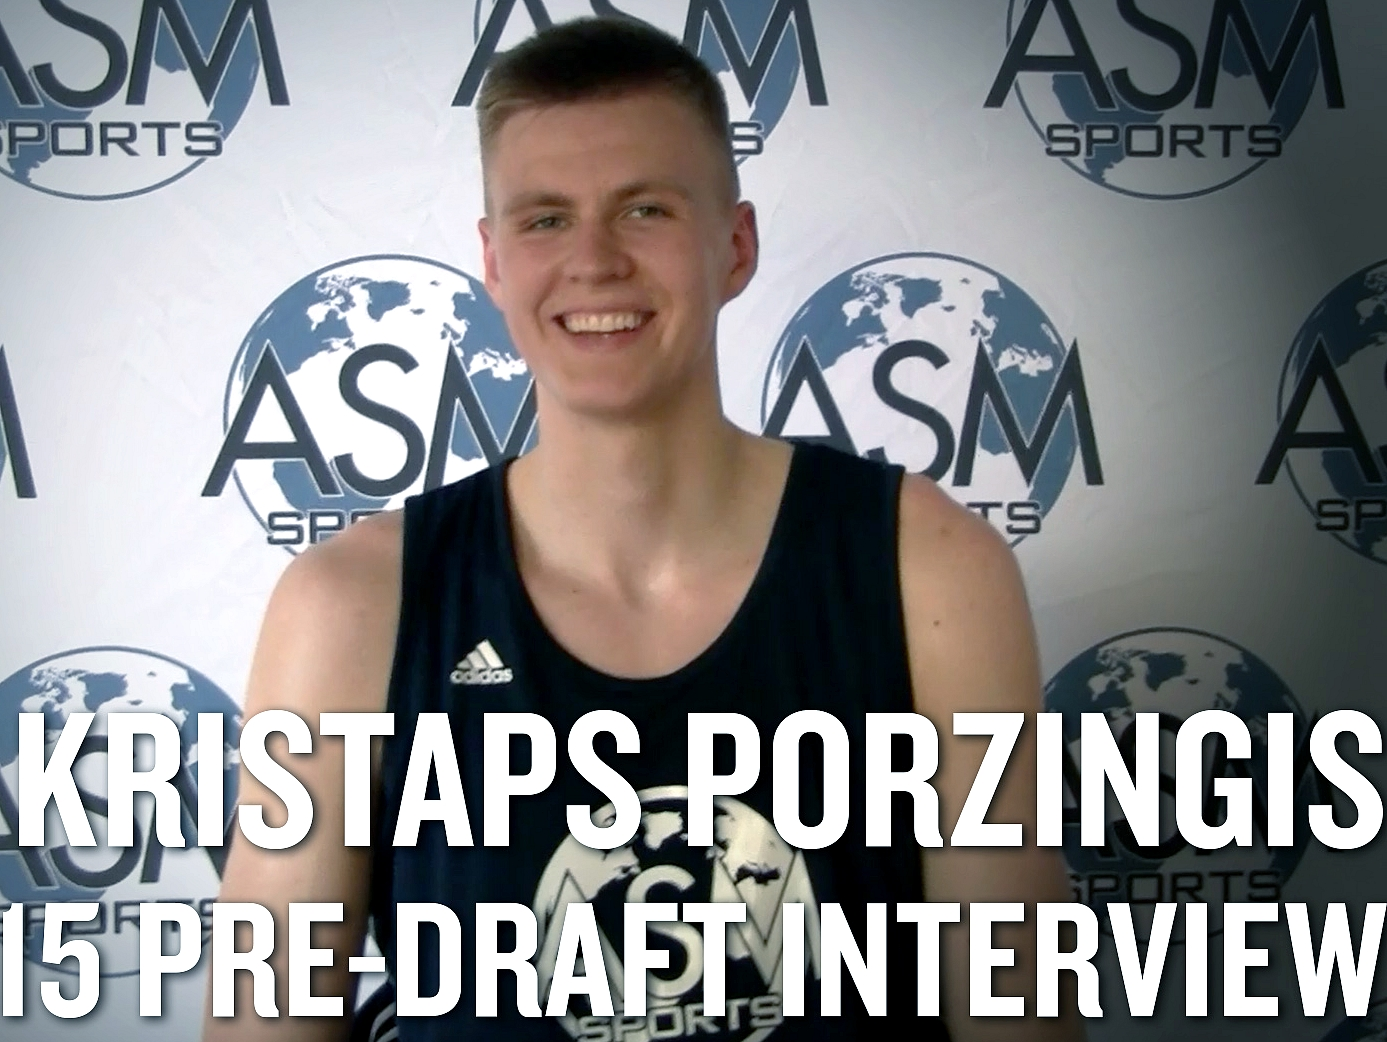 Kristaps Porzingis Interview from Las Vegas